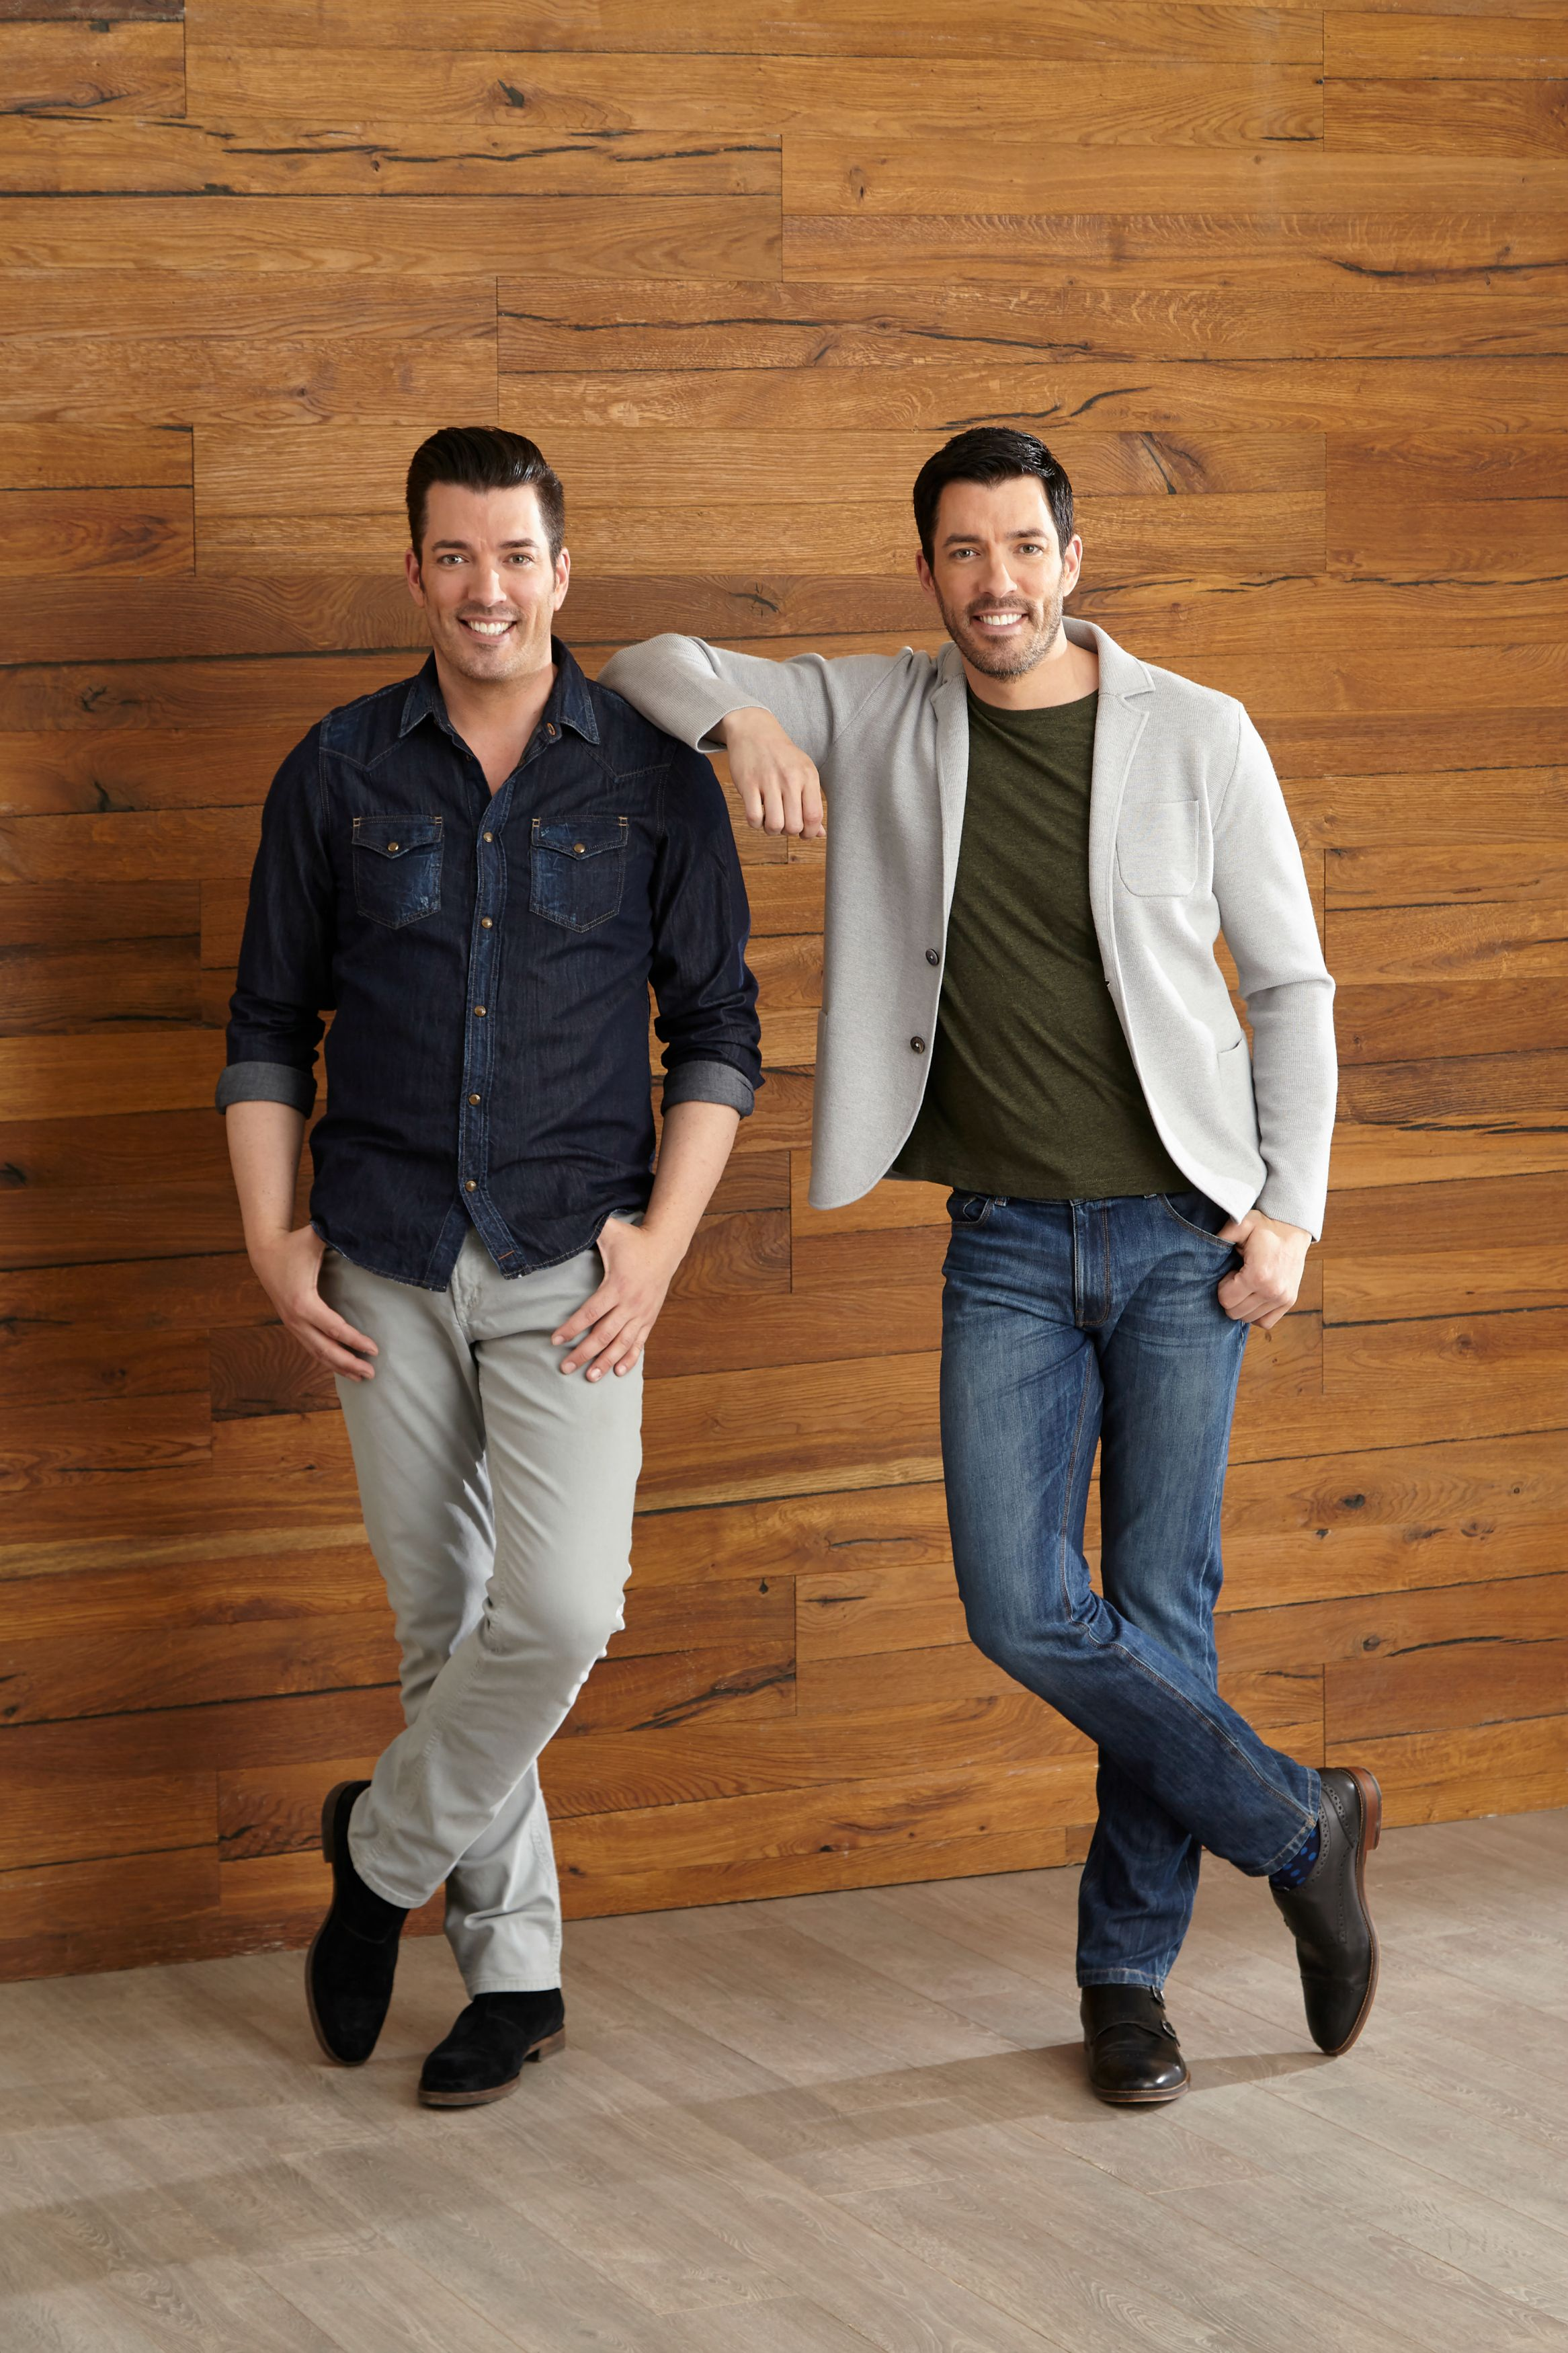 The Property Brothers Just Announced An Exclusive Collection With Kohl's